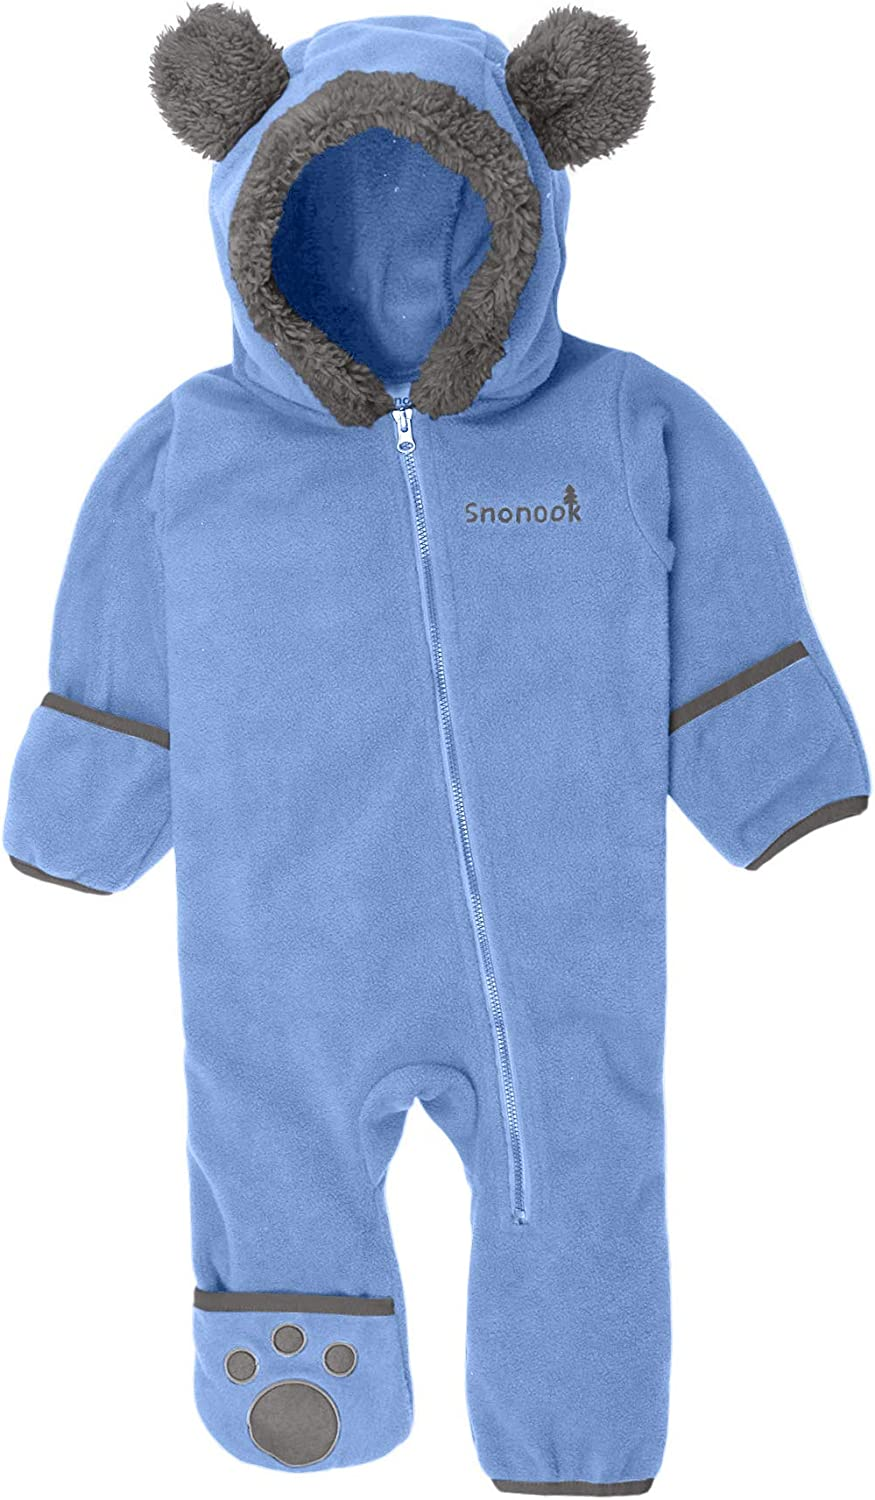 Snonook Fleece Baby Bunting Hooded Romper Bodysuit with Fold-Over Mitten and Footed Cuffs: Clothing